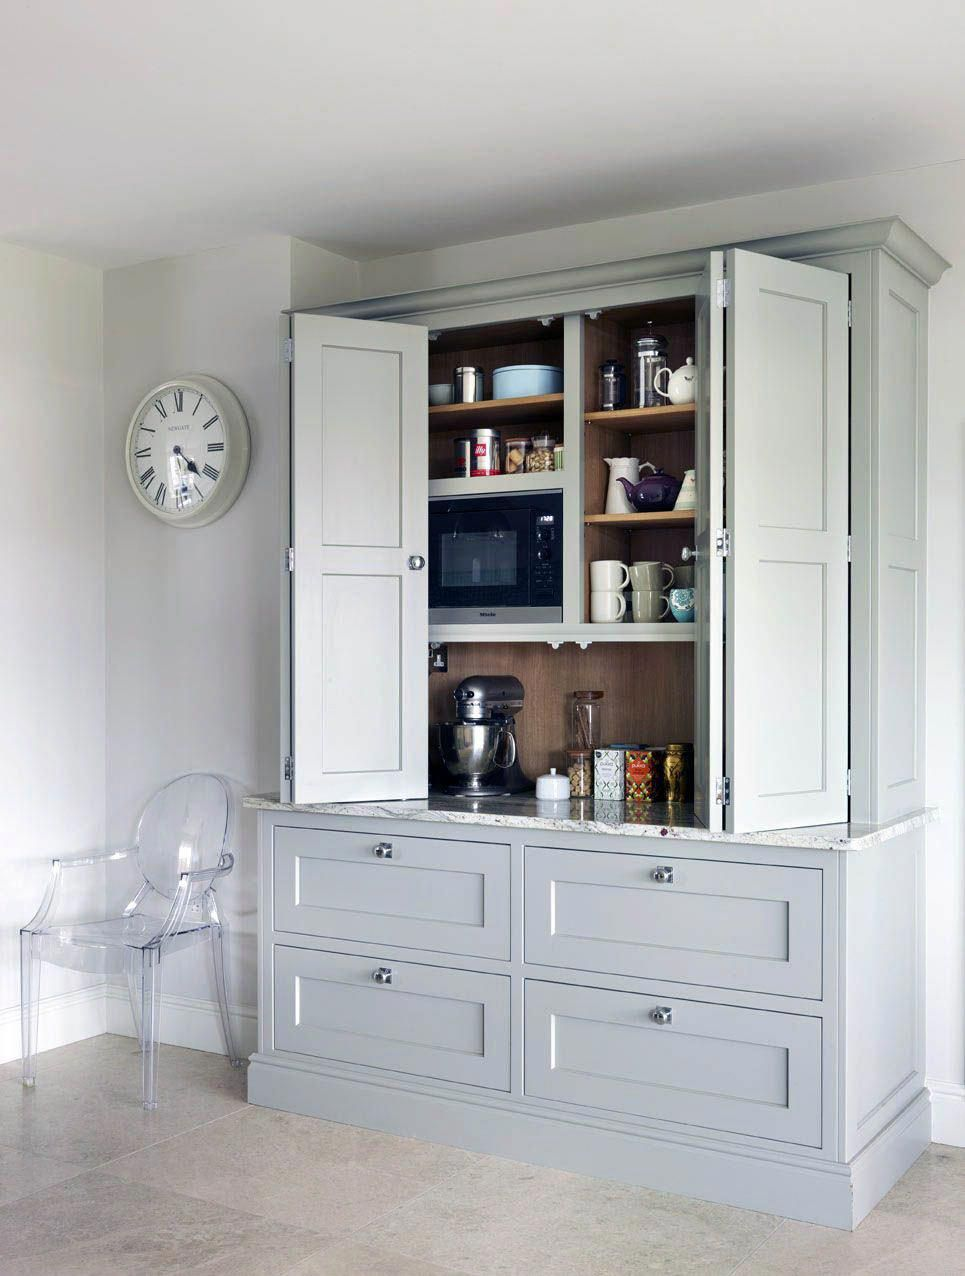 kitchencupboards kitchen appliance storage kitchen pantry cabinets pantry cabinet ikea on kitchen cabinets pantry id=12791